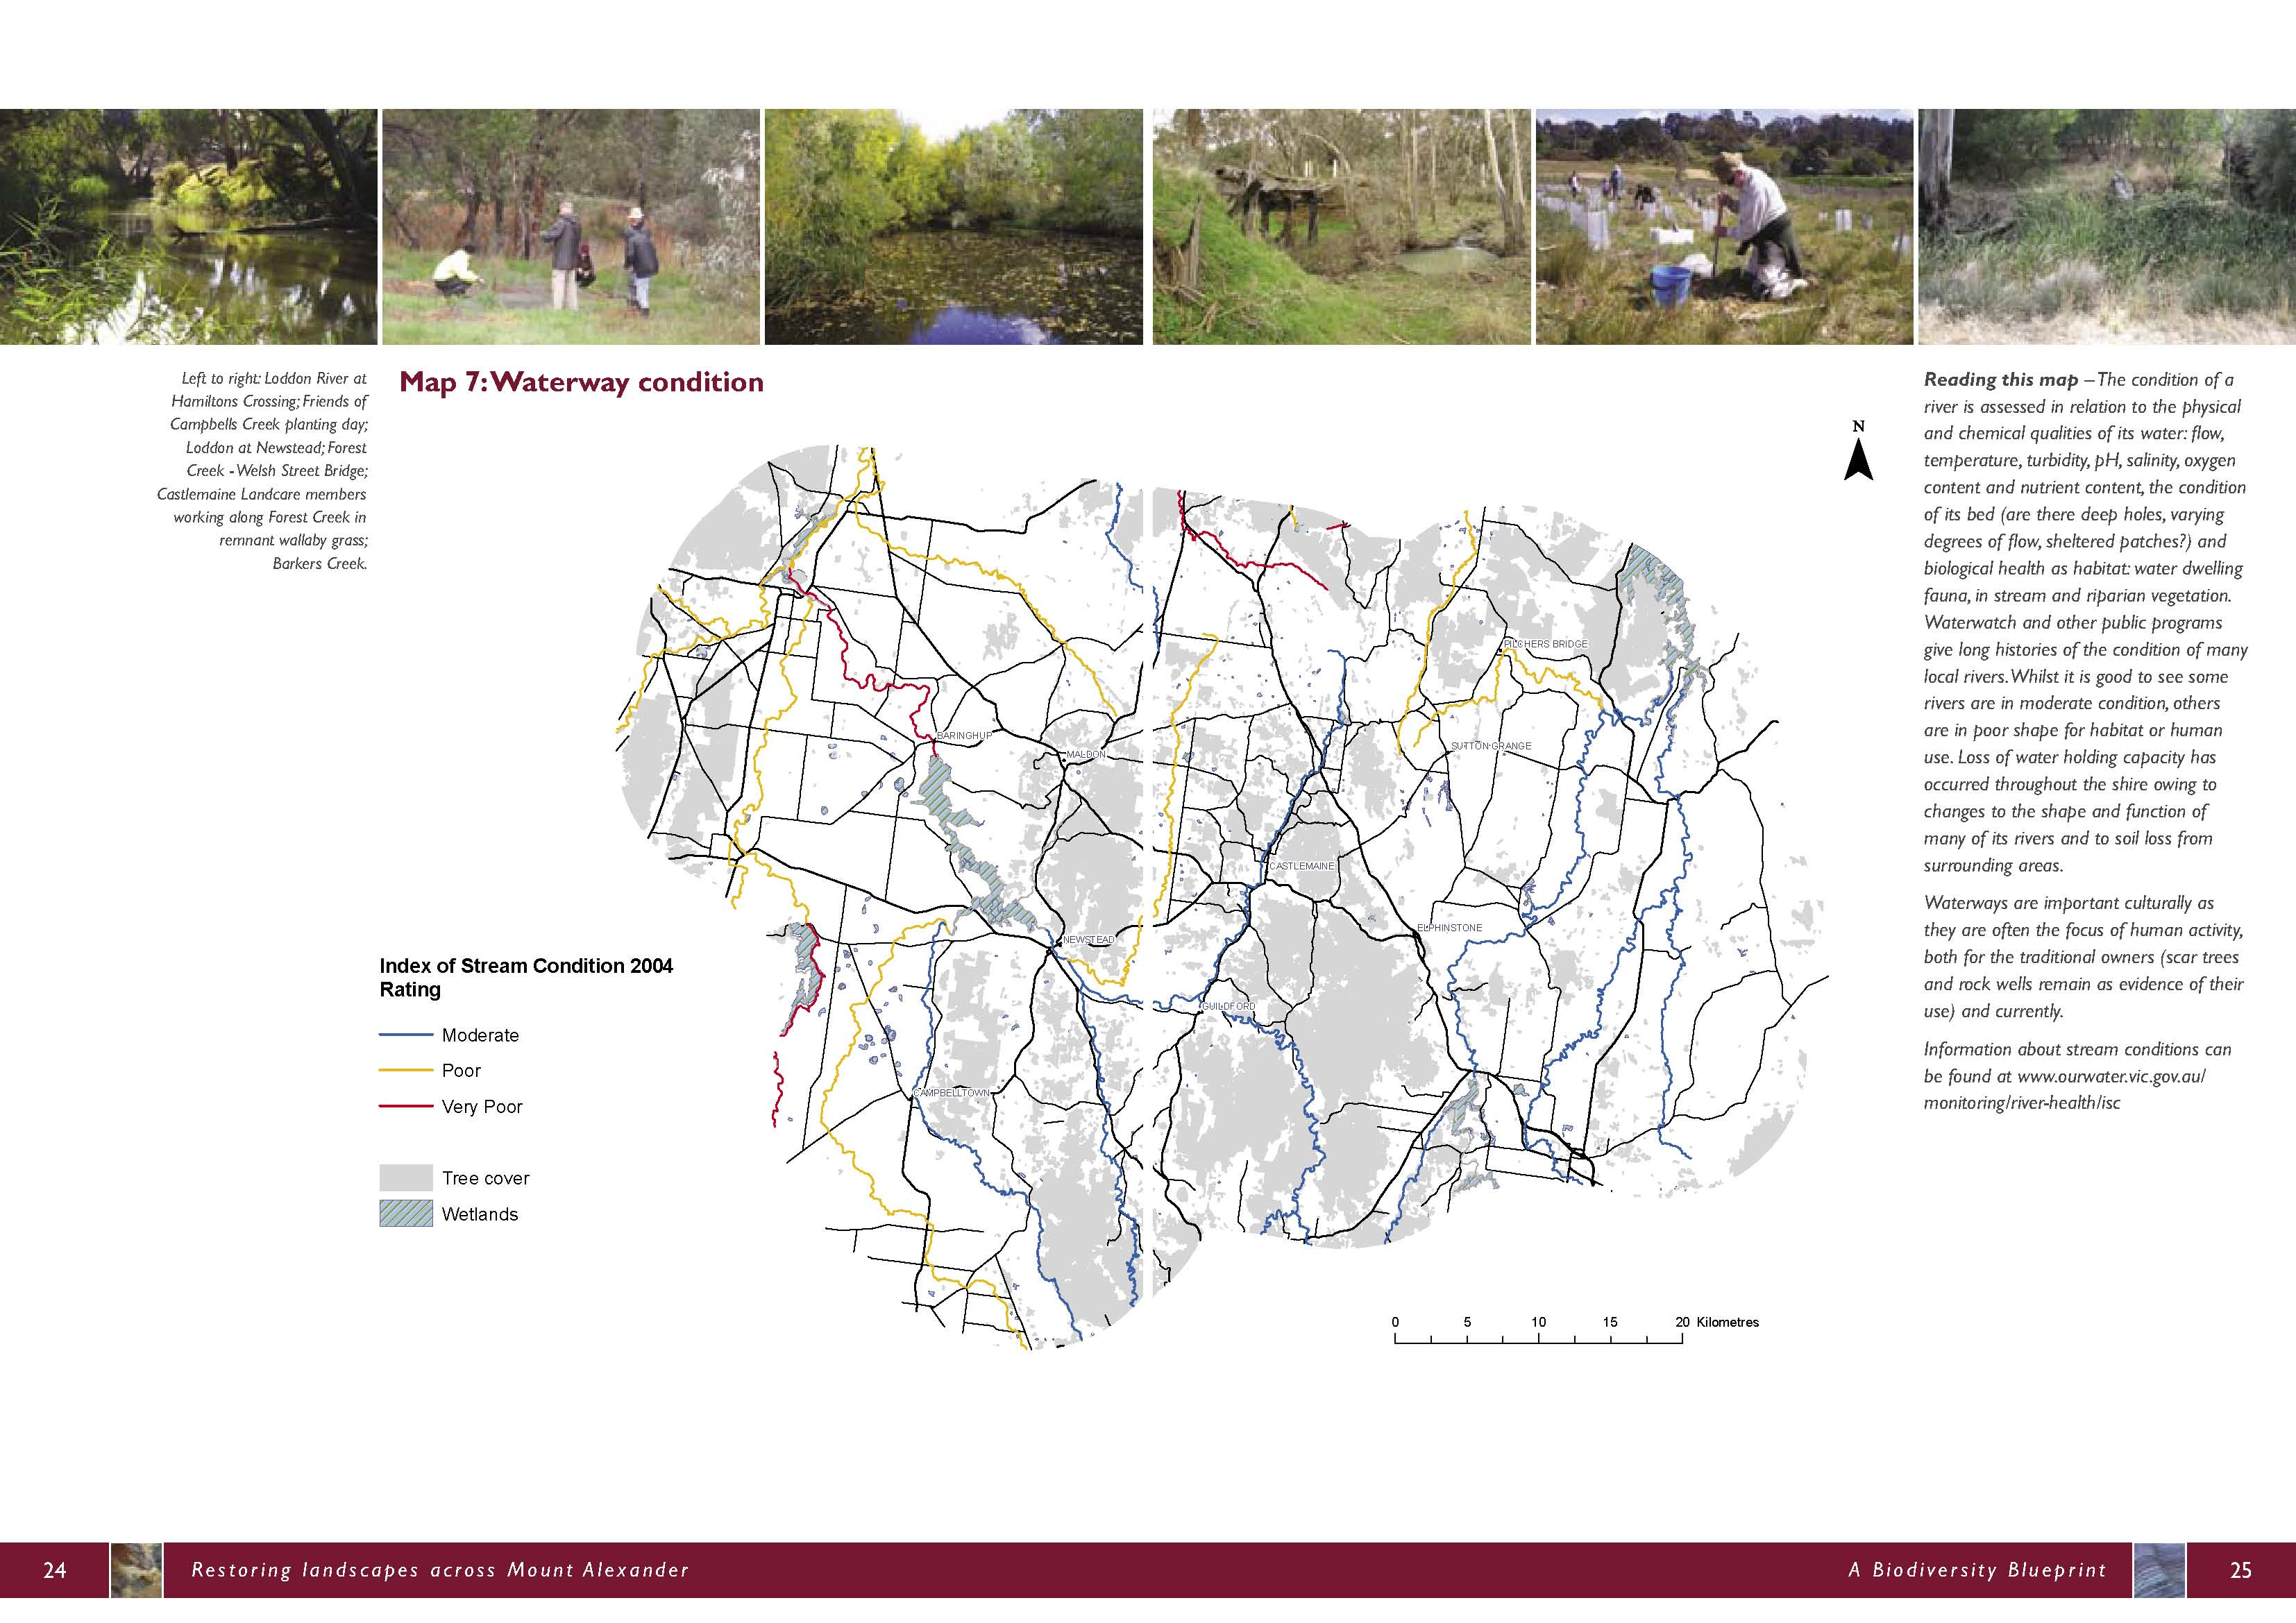 Biodiversity blueprint and strategic plan connecting country map 7 waterway condition malvernweather Choice Image